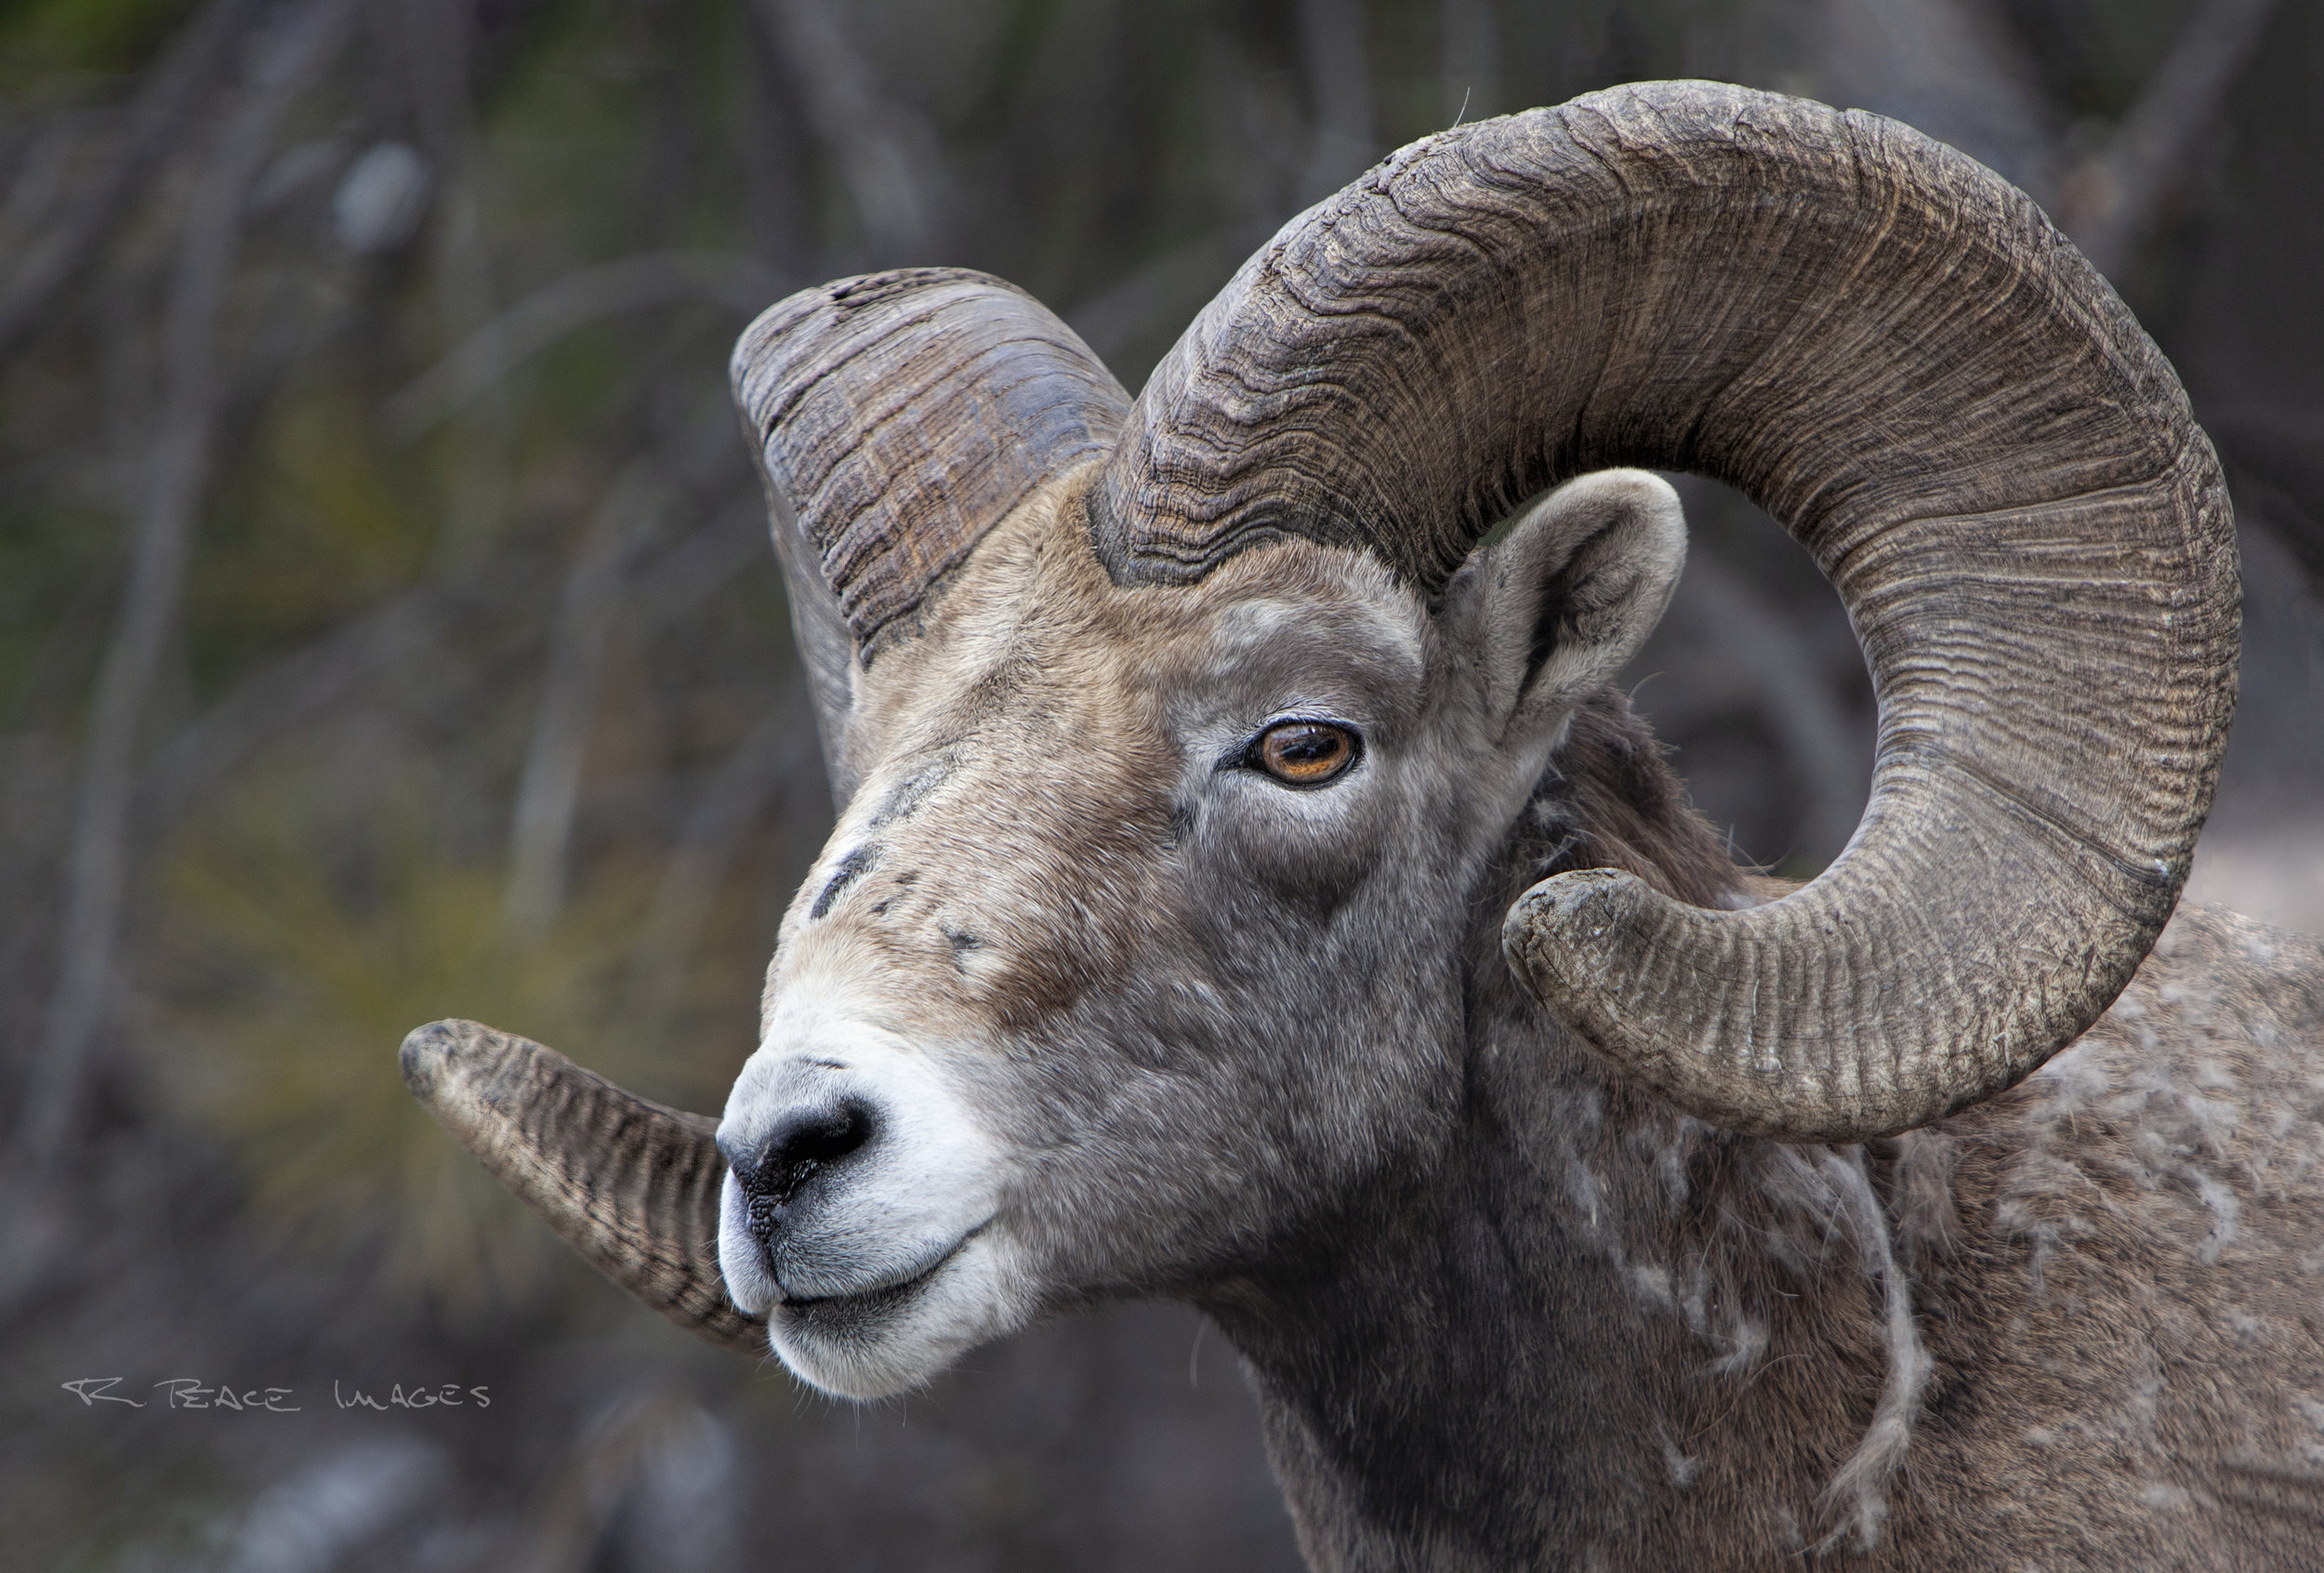 California Bighorn Ram displays his magnificent horns in this close up shot